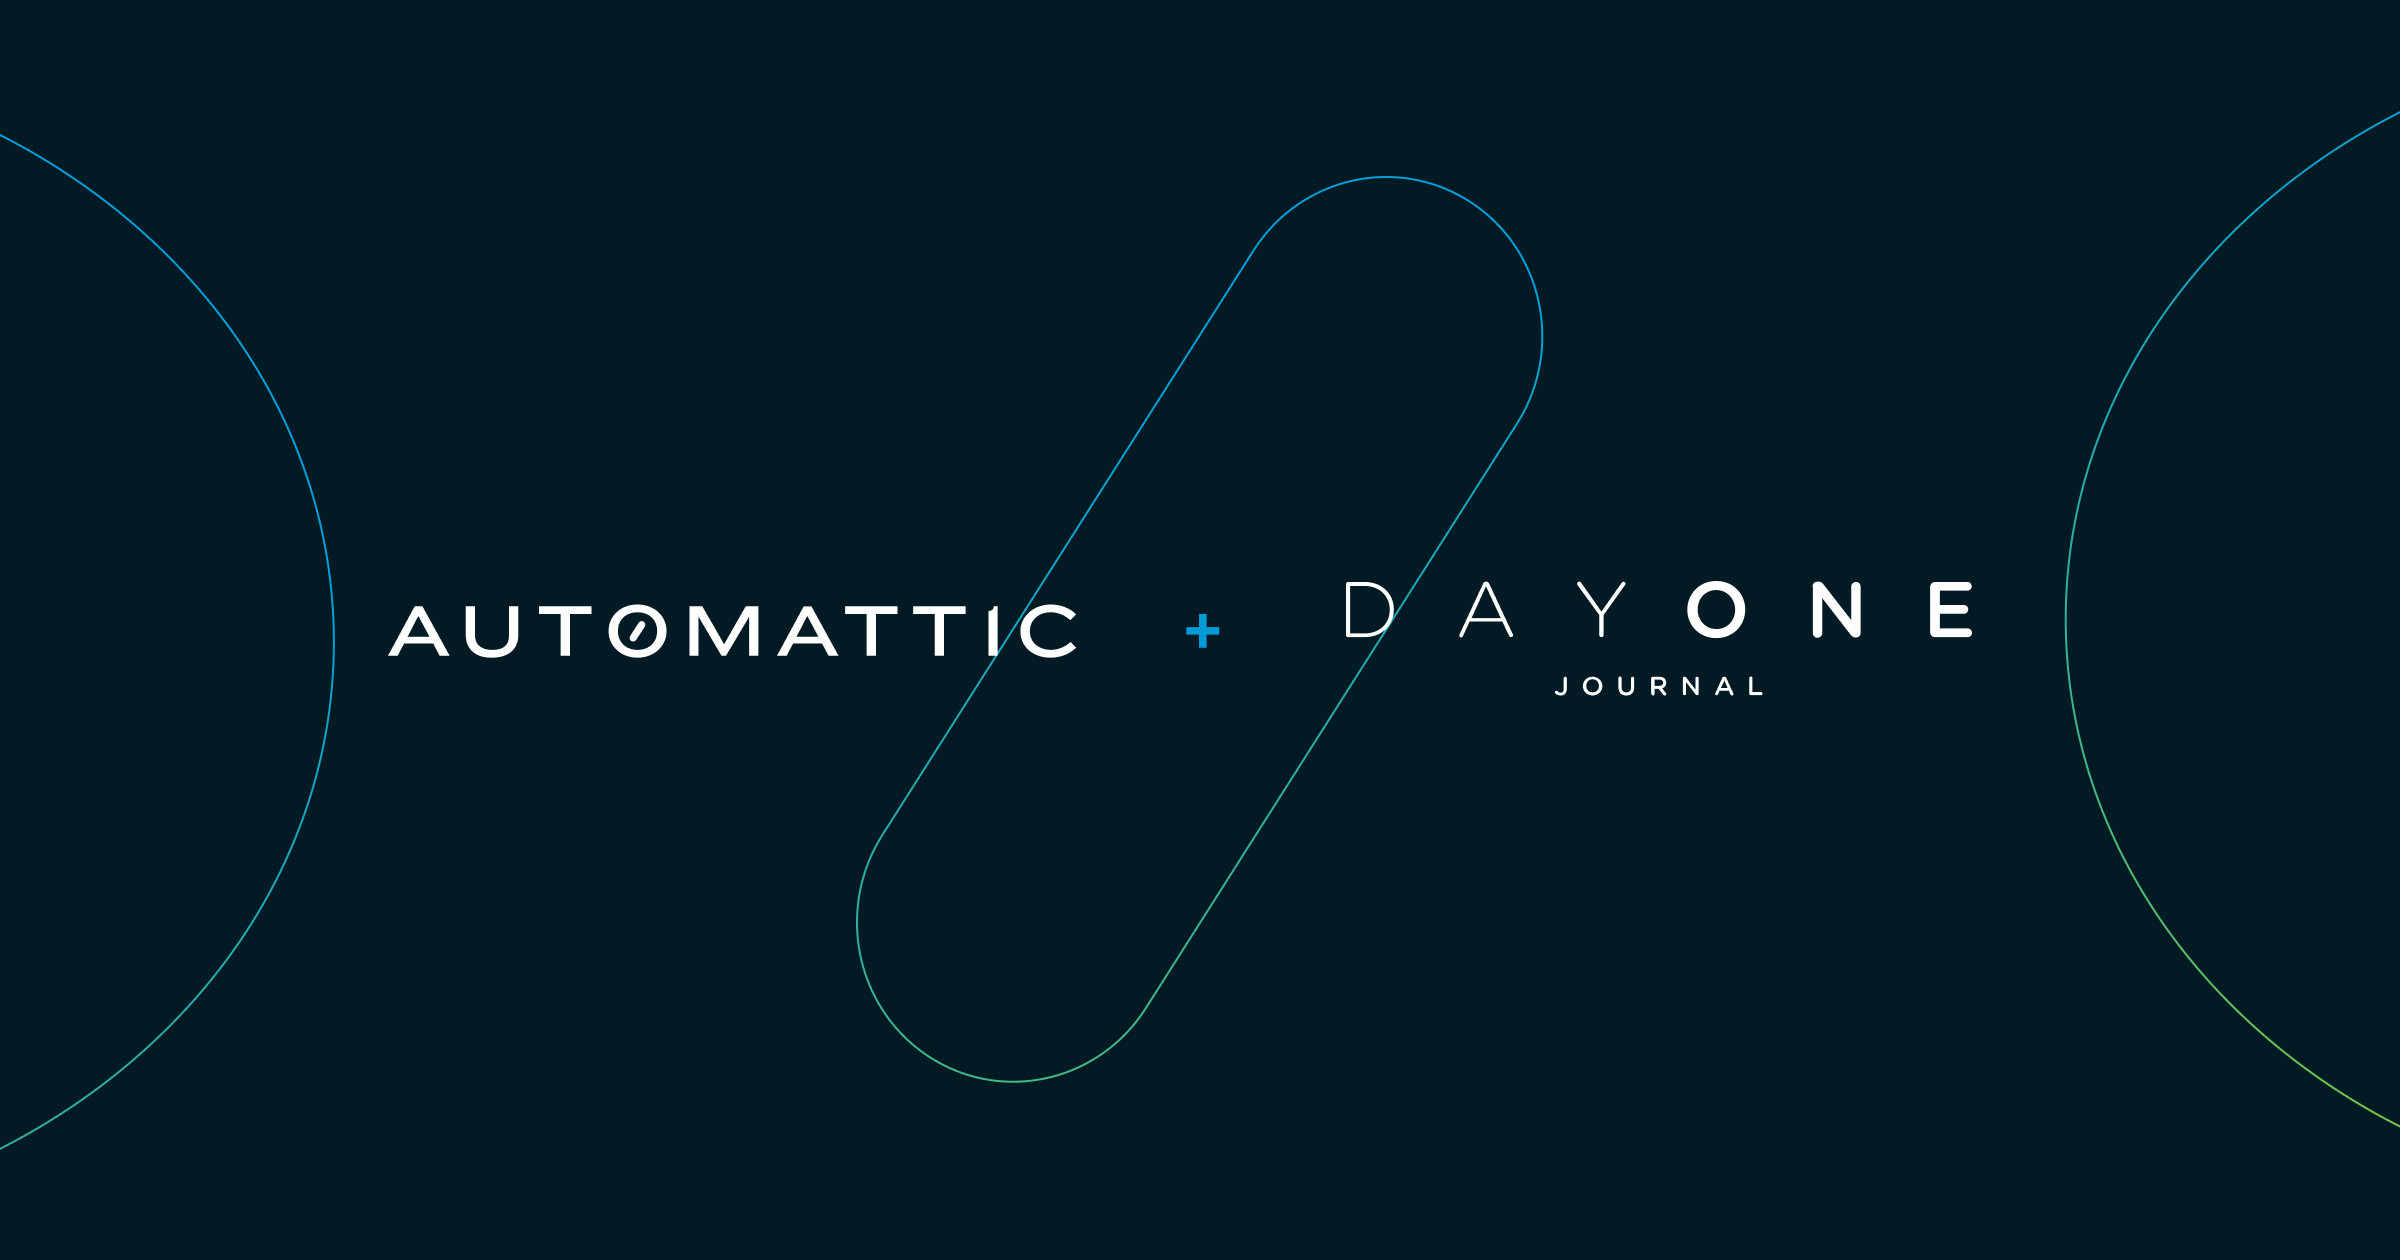 Day One, the Journaling App, Joins Automattic